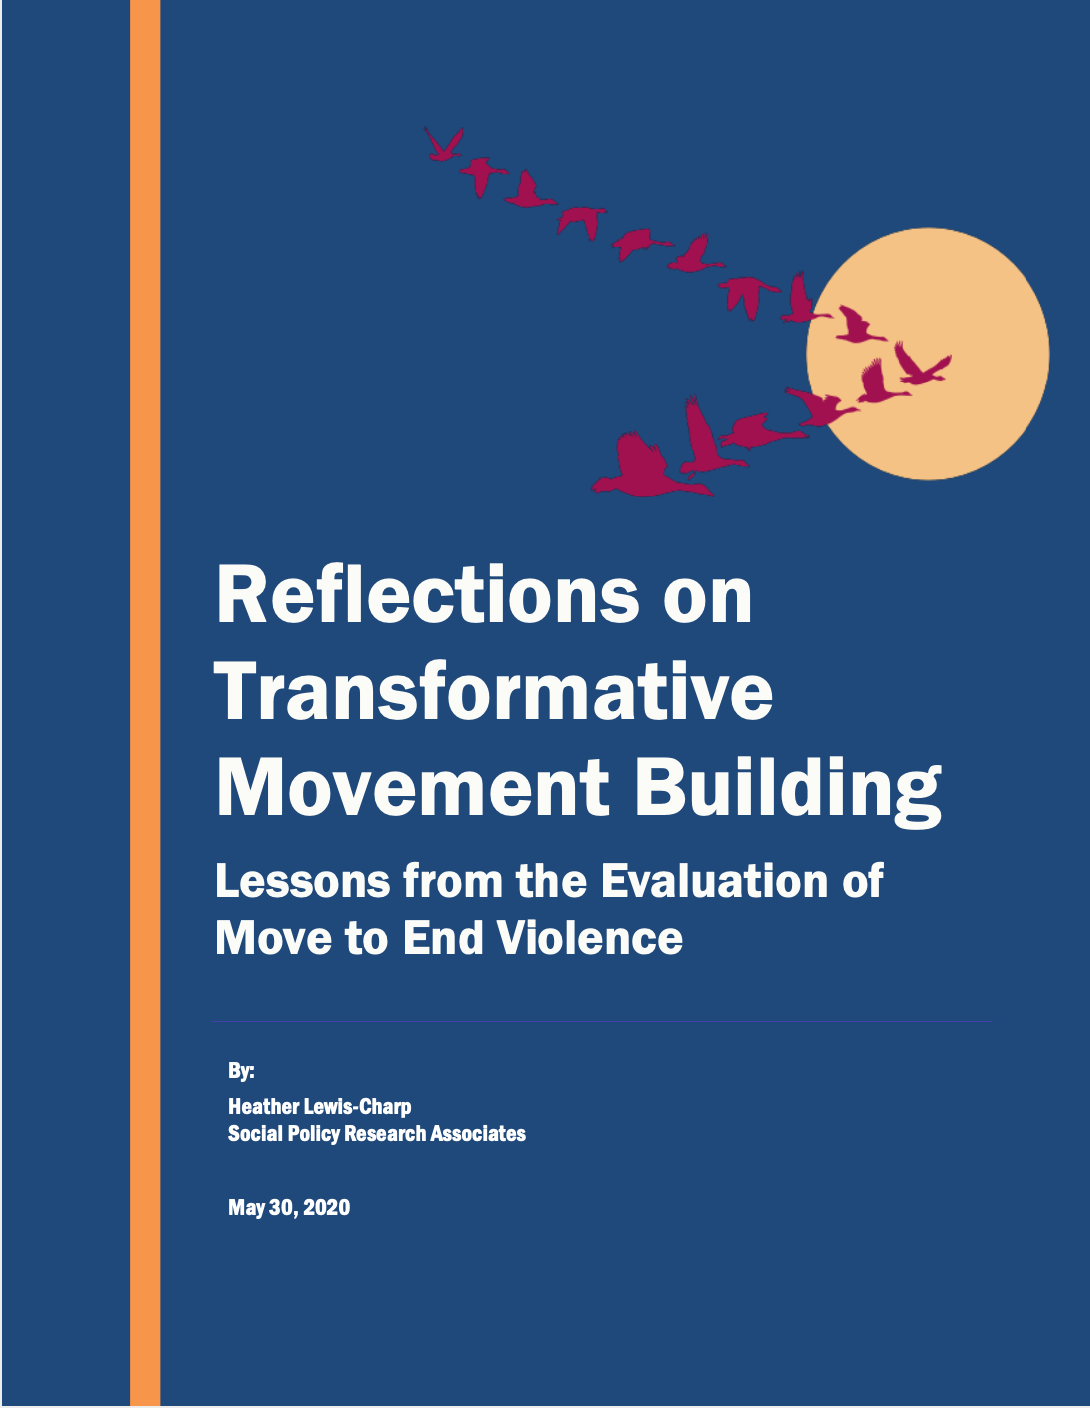 Cover of Reflections on Transformative Movement Building report